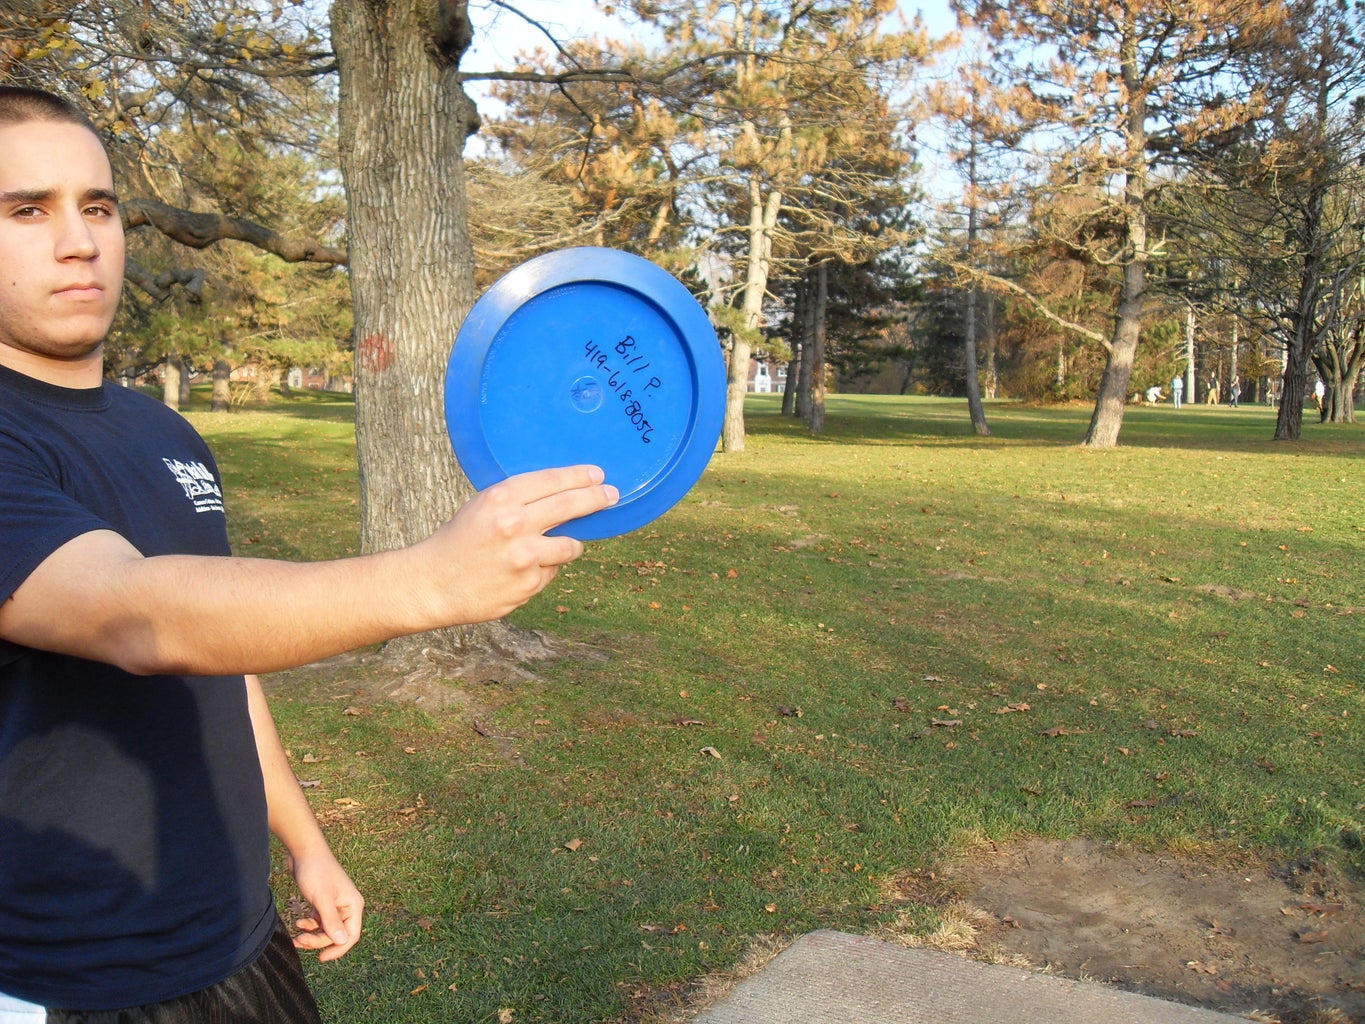 Gripping the Disc- Choice #2